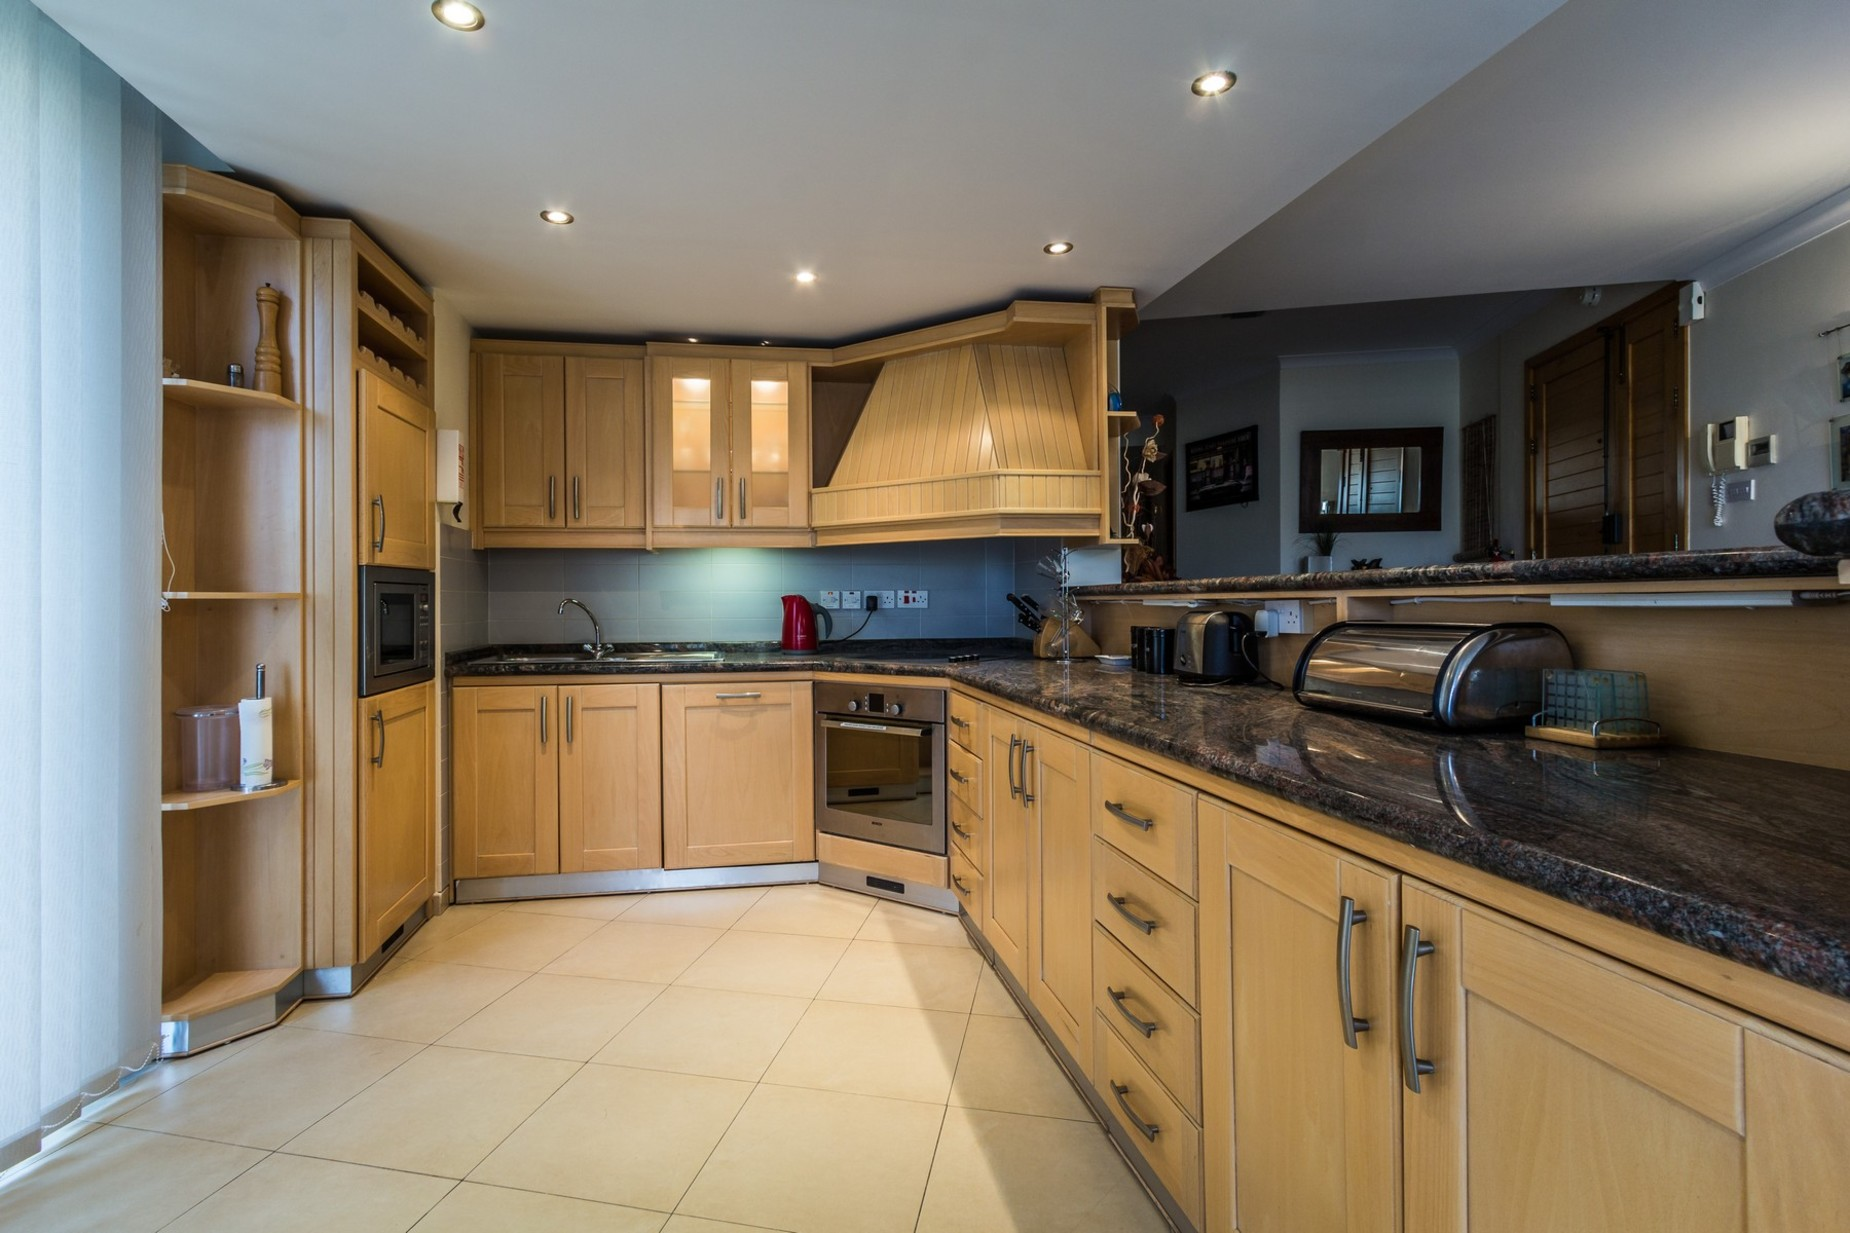 4 bed Apartment For Rent in St Julian's, St Julian's - thumb 4